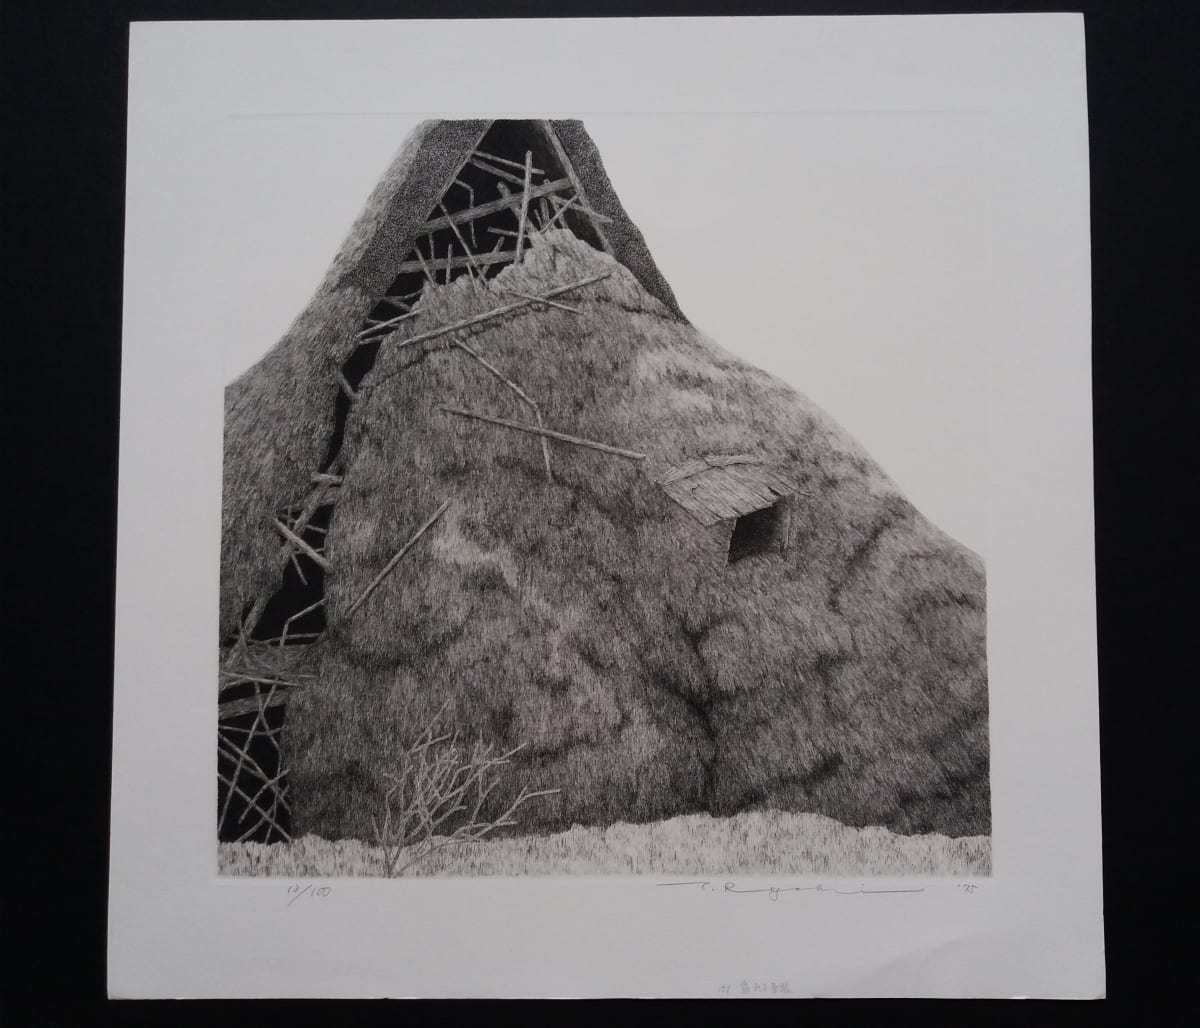 Ryohei Tanaka Ruined Farmhouse (4), 1975 Etching 36 x 36 cm image size Edition of 100